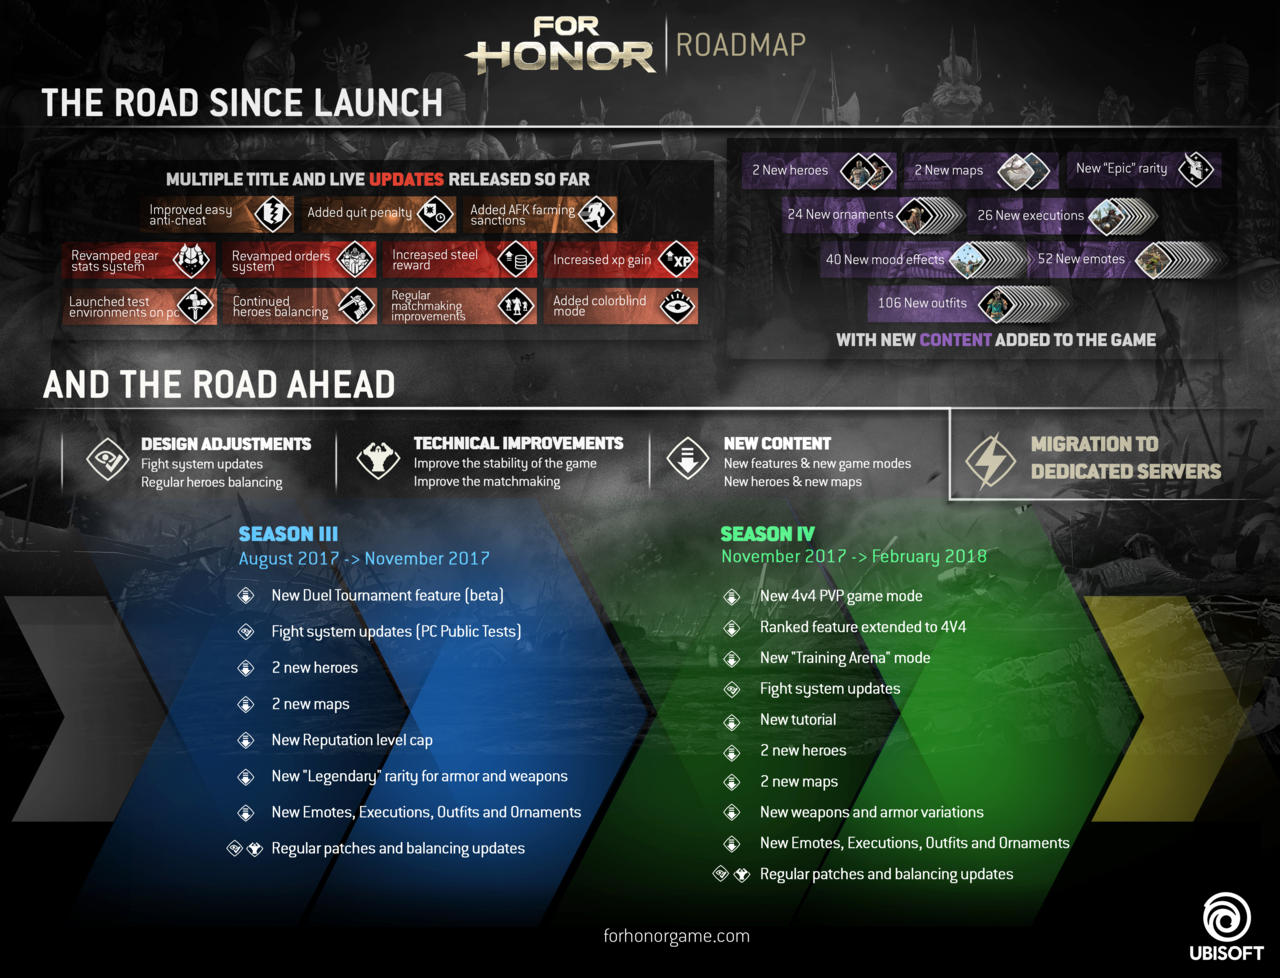 For Honor's roadmap of upcoming content.